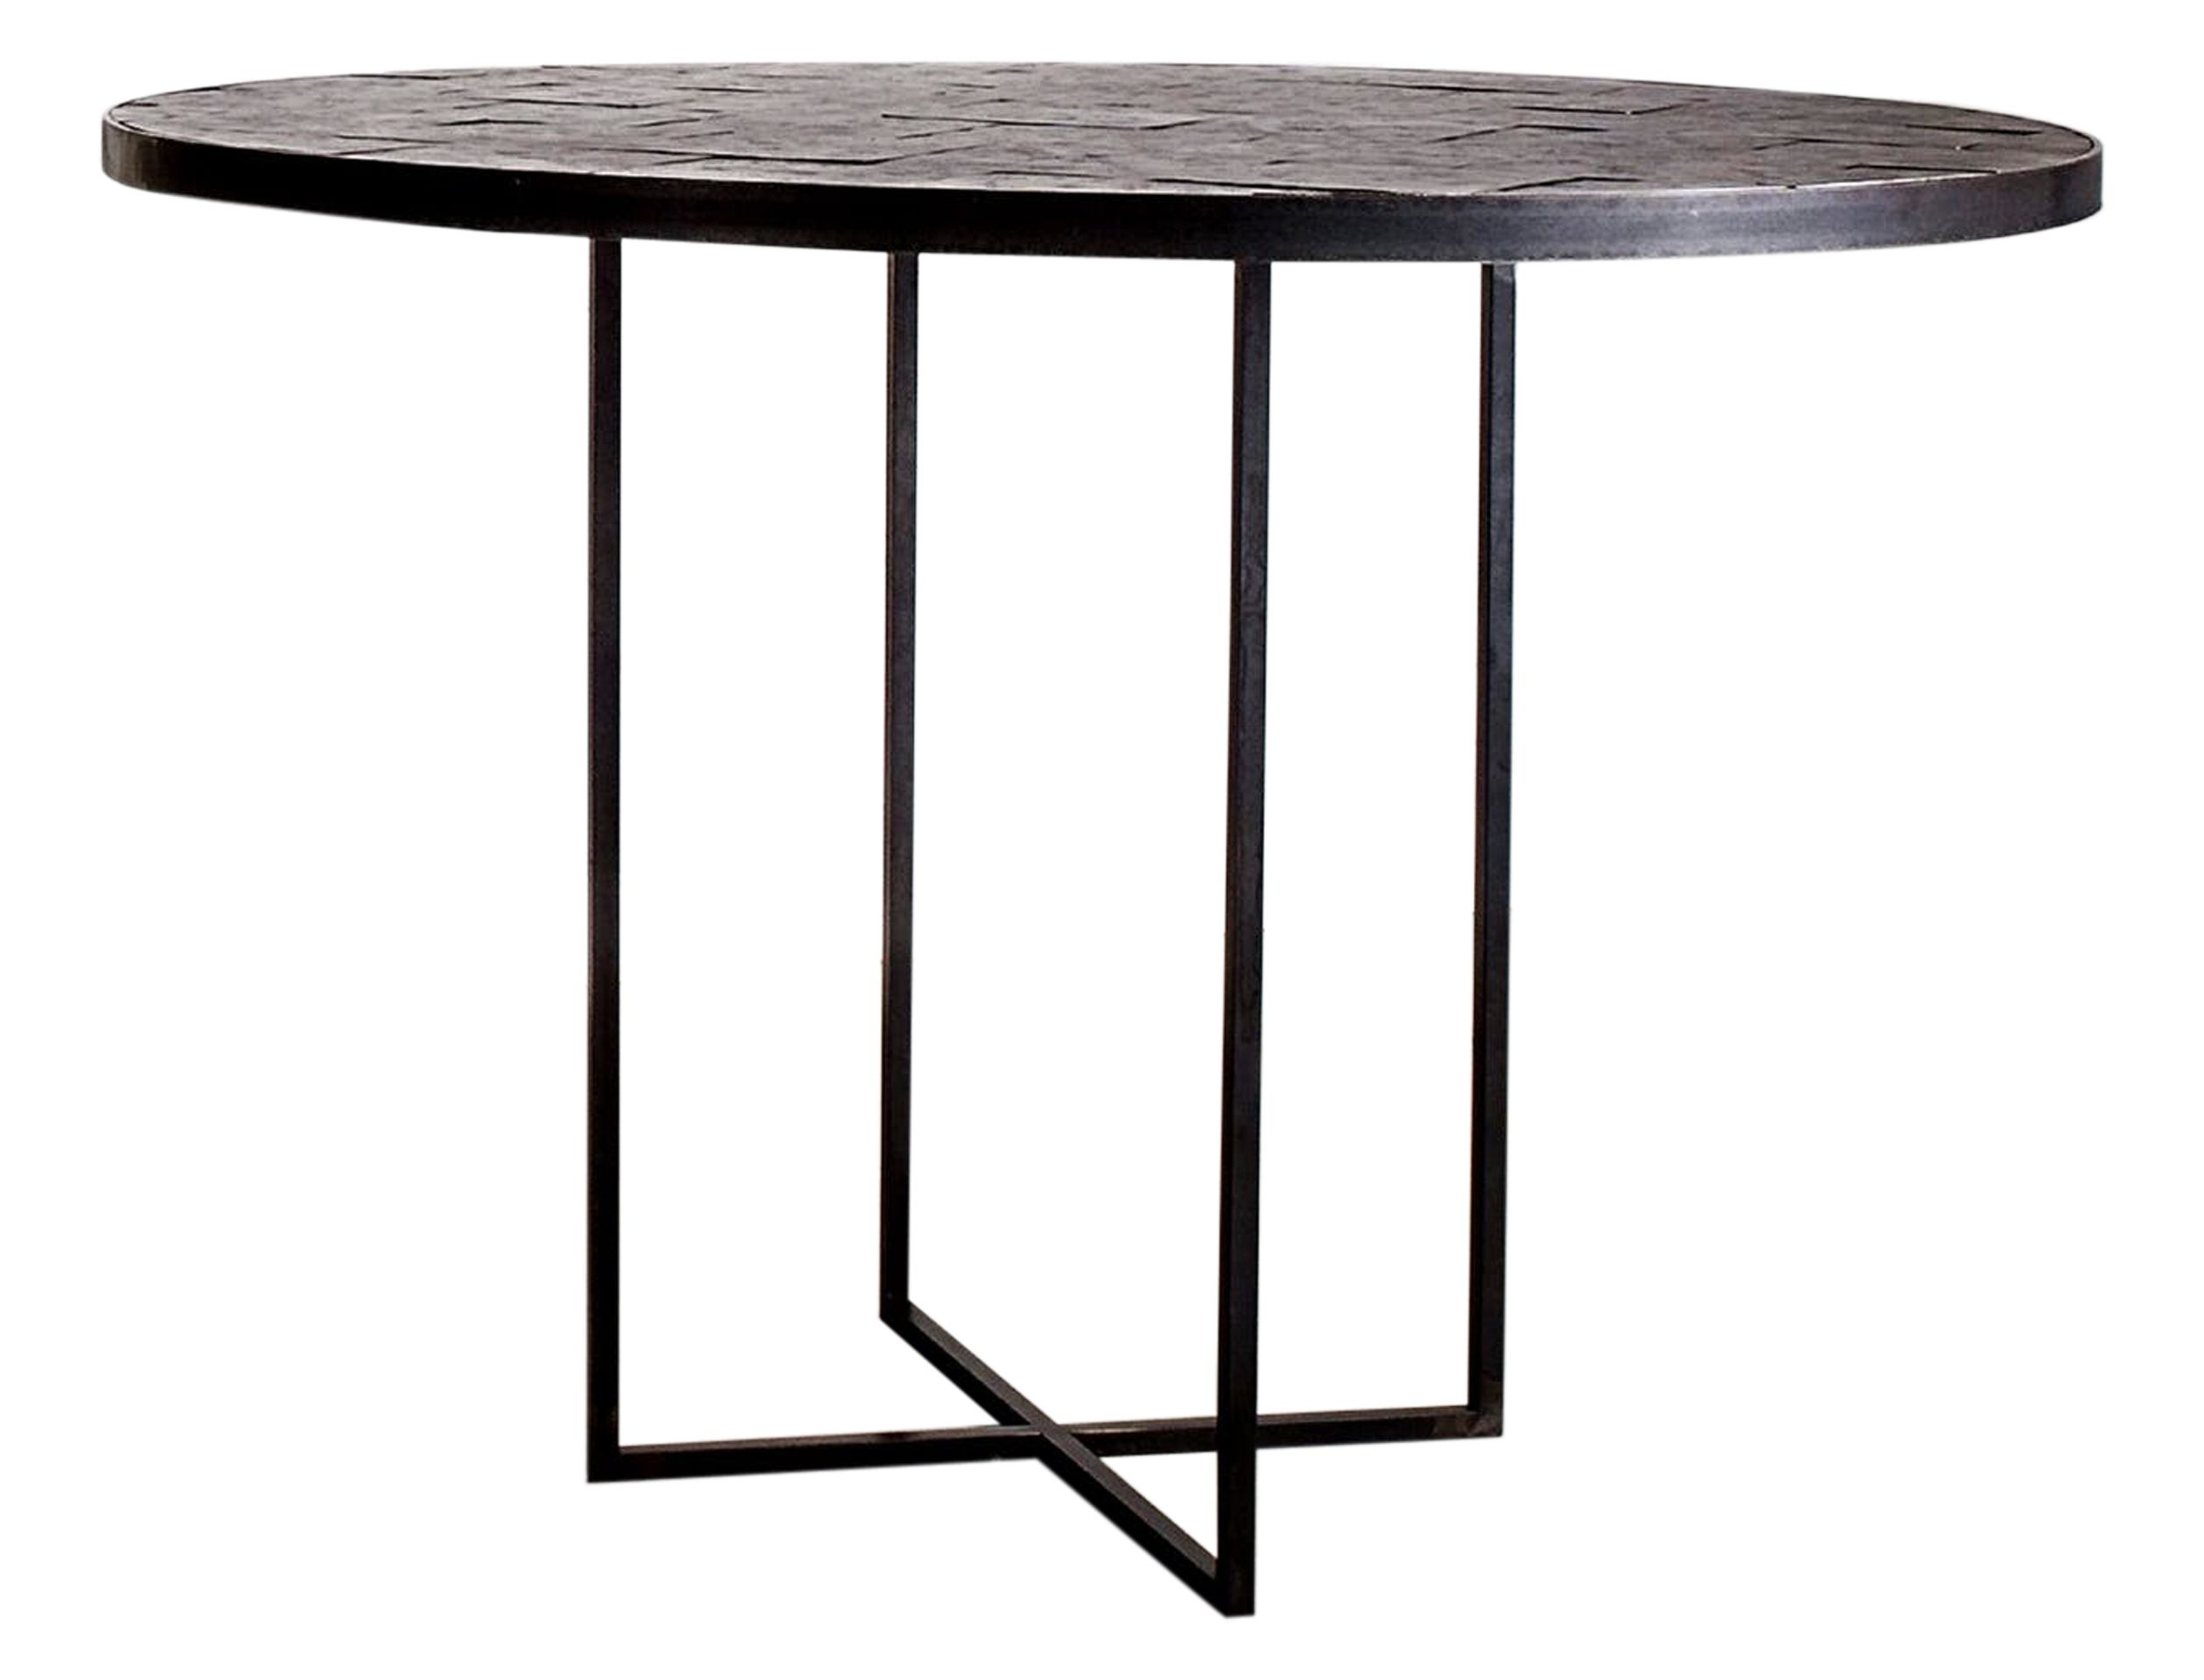 Hammered Steel Round Table Circular Dining Table Mid Century Modern Dining Room Dining Room Table